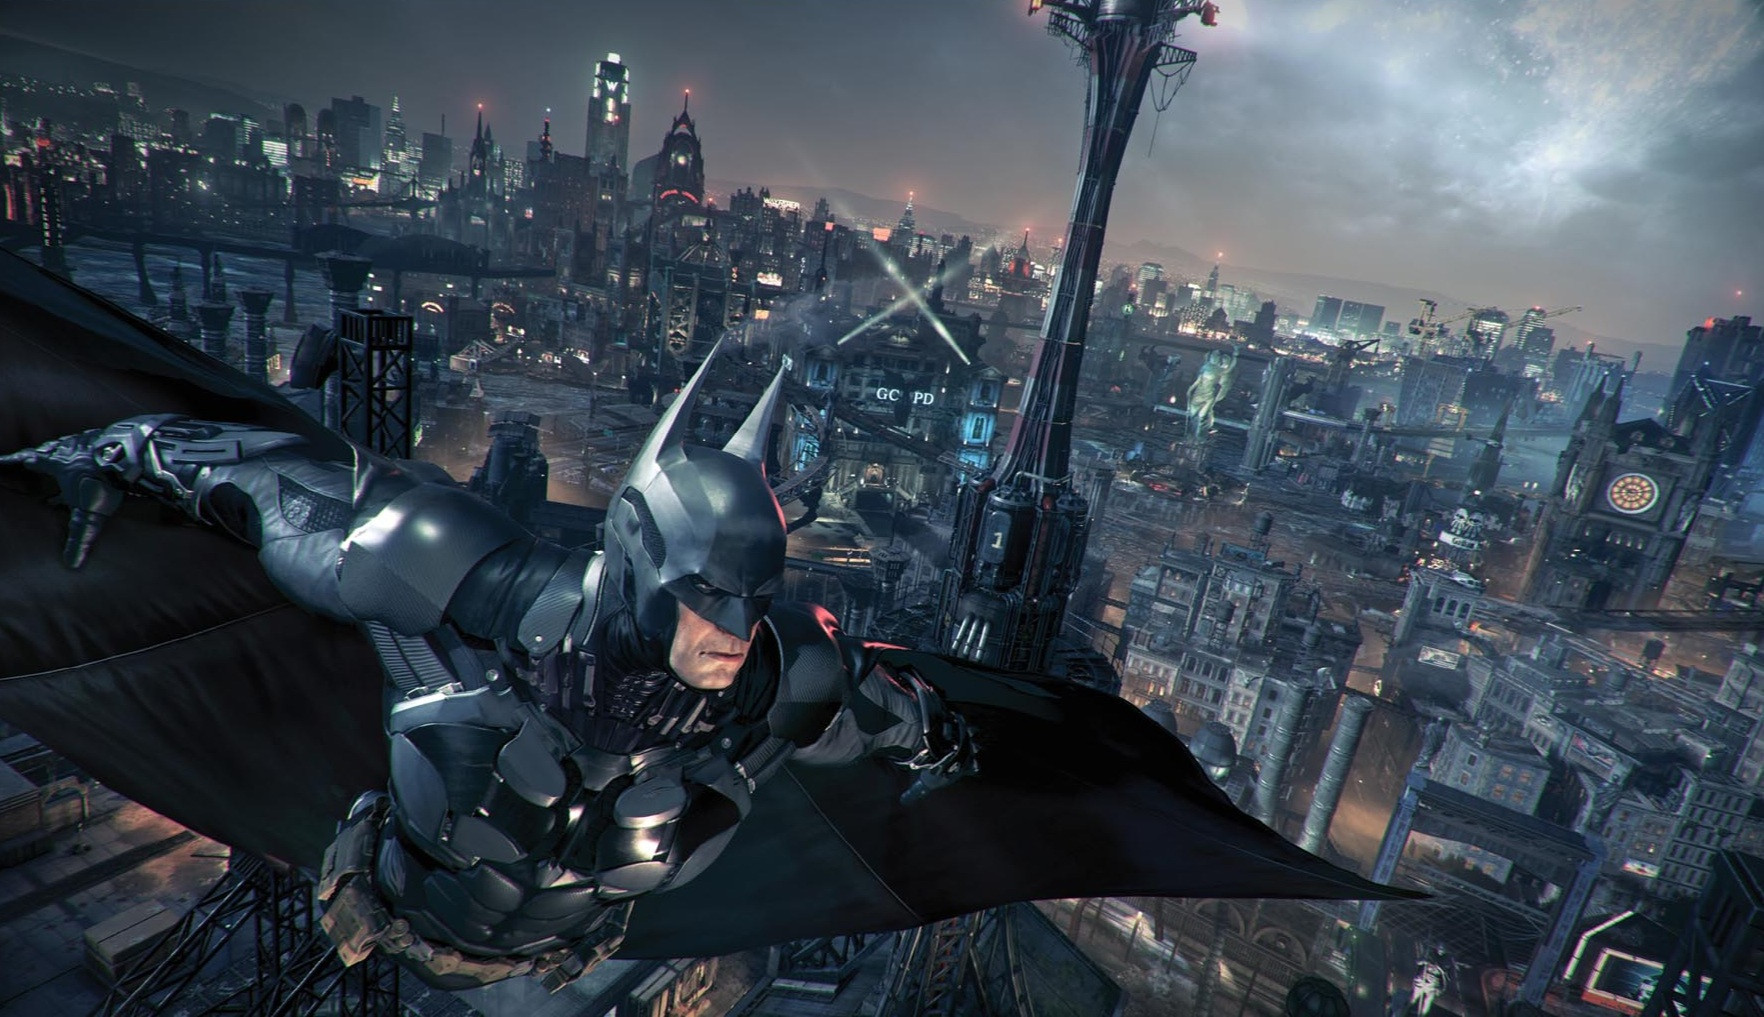 Bad Guy Set It Off New Batman Arkham Knight Screenshots Show Off Batmobile